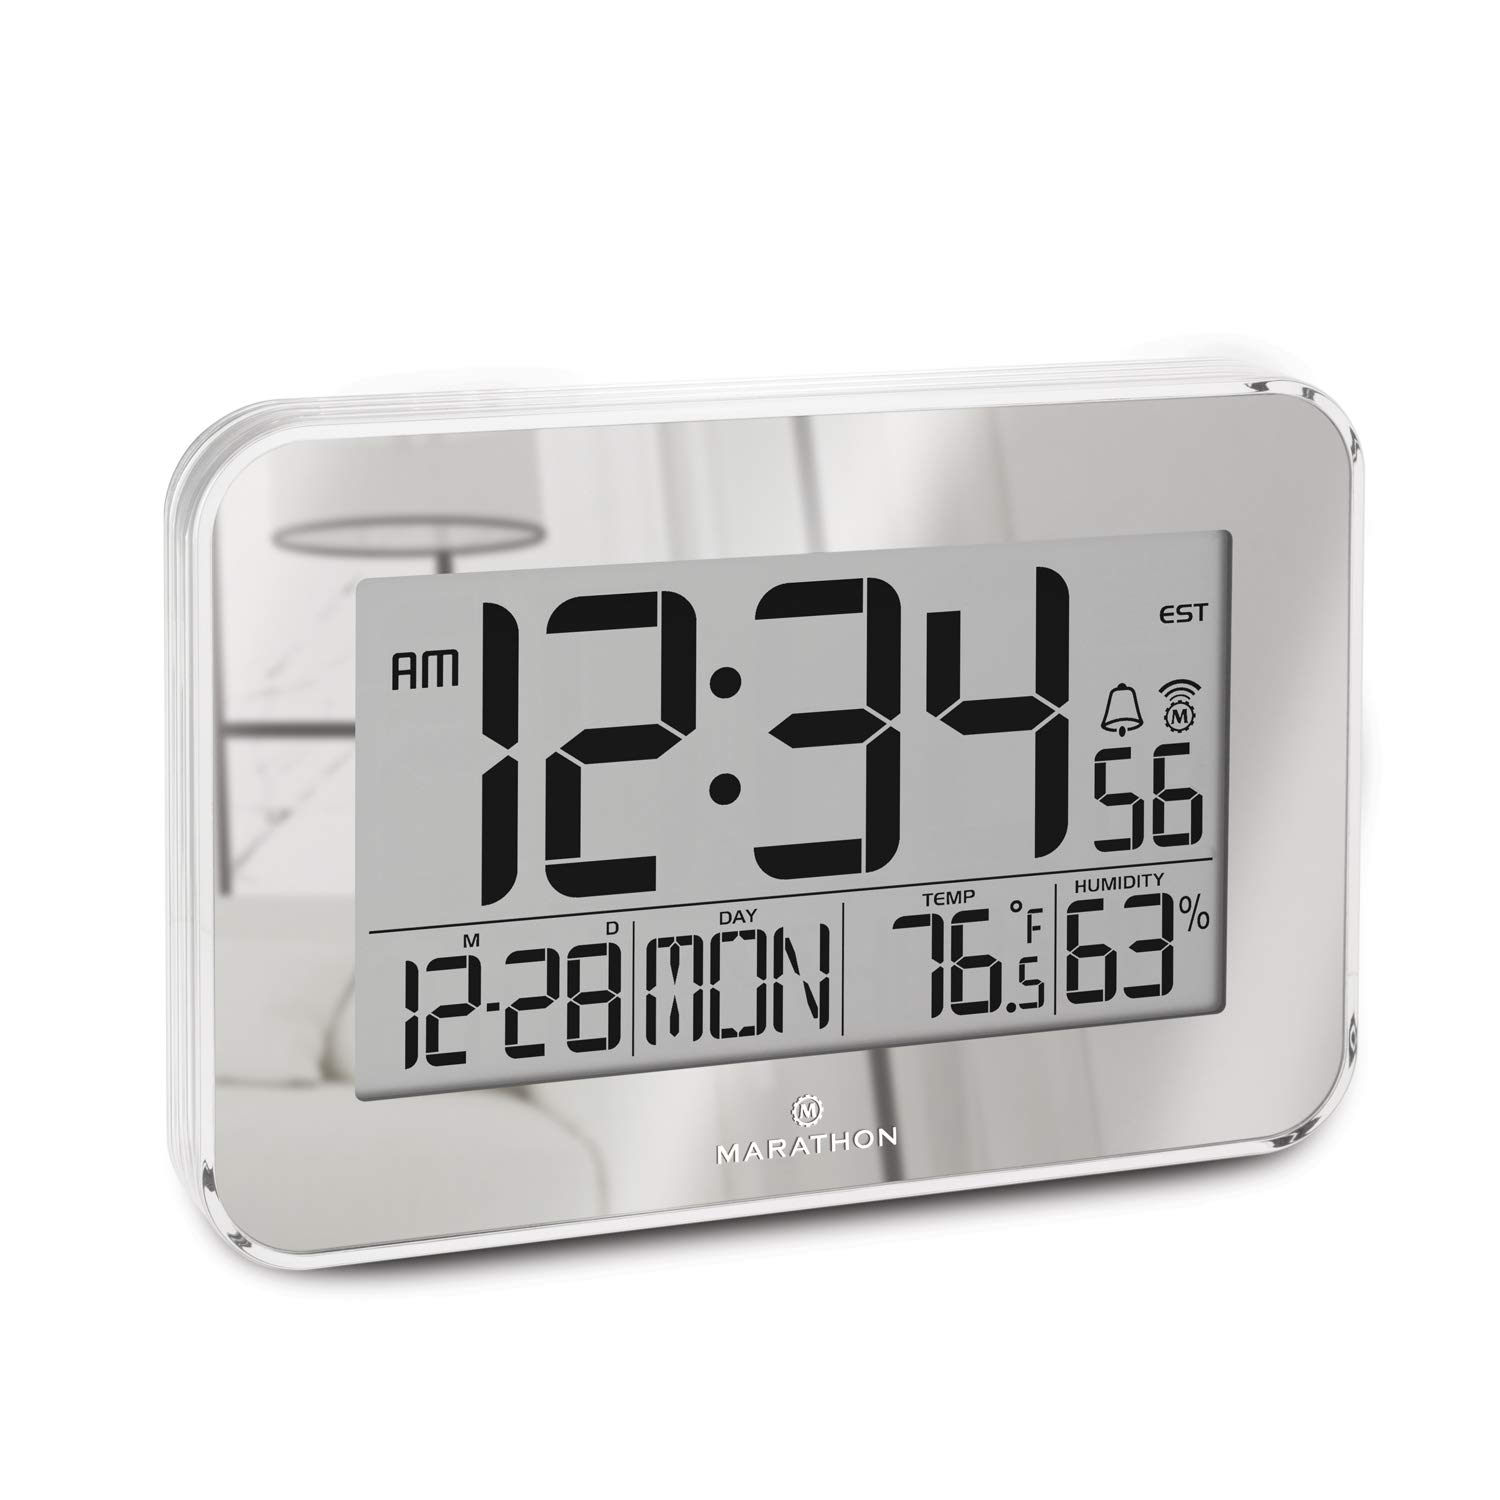 Marathon Atomic Wall Clock with Alarm, Snooze, Table Stand and Clear Bezel. Easy to Read Date, Temperature & Humidity.8 Time Zones. Batteries Included. Color–Mirrored. SKU-CL030060SV